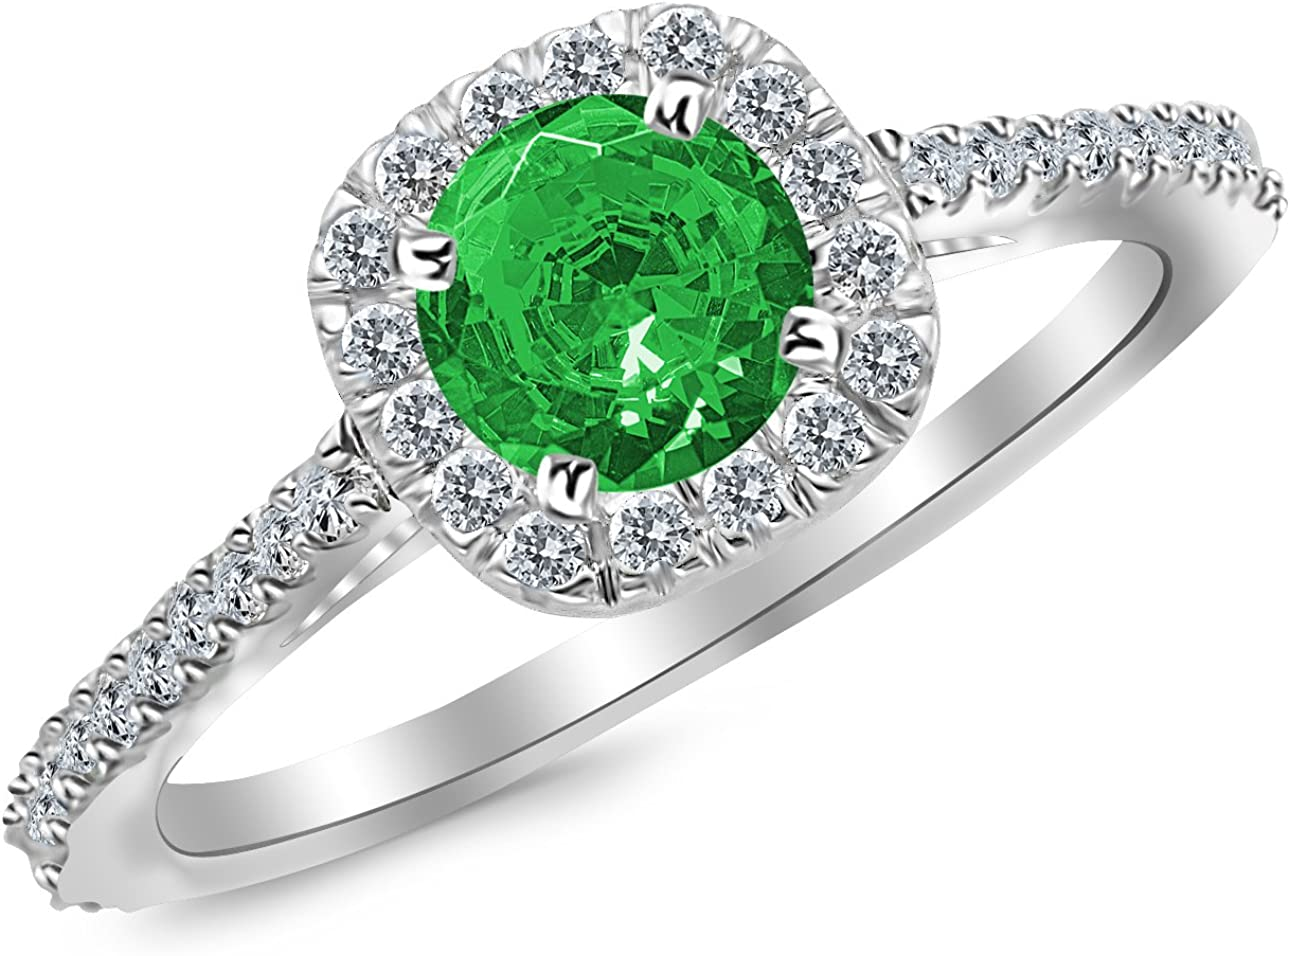 0.85 Carat 14K White Gold Gorgeous Classic Cushion Halo Style Diamond Engagement Ring with a 0.5 Carat Natural Emerald Center (Heirloom Quality)